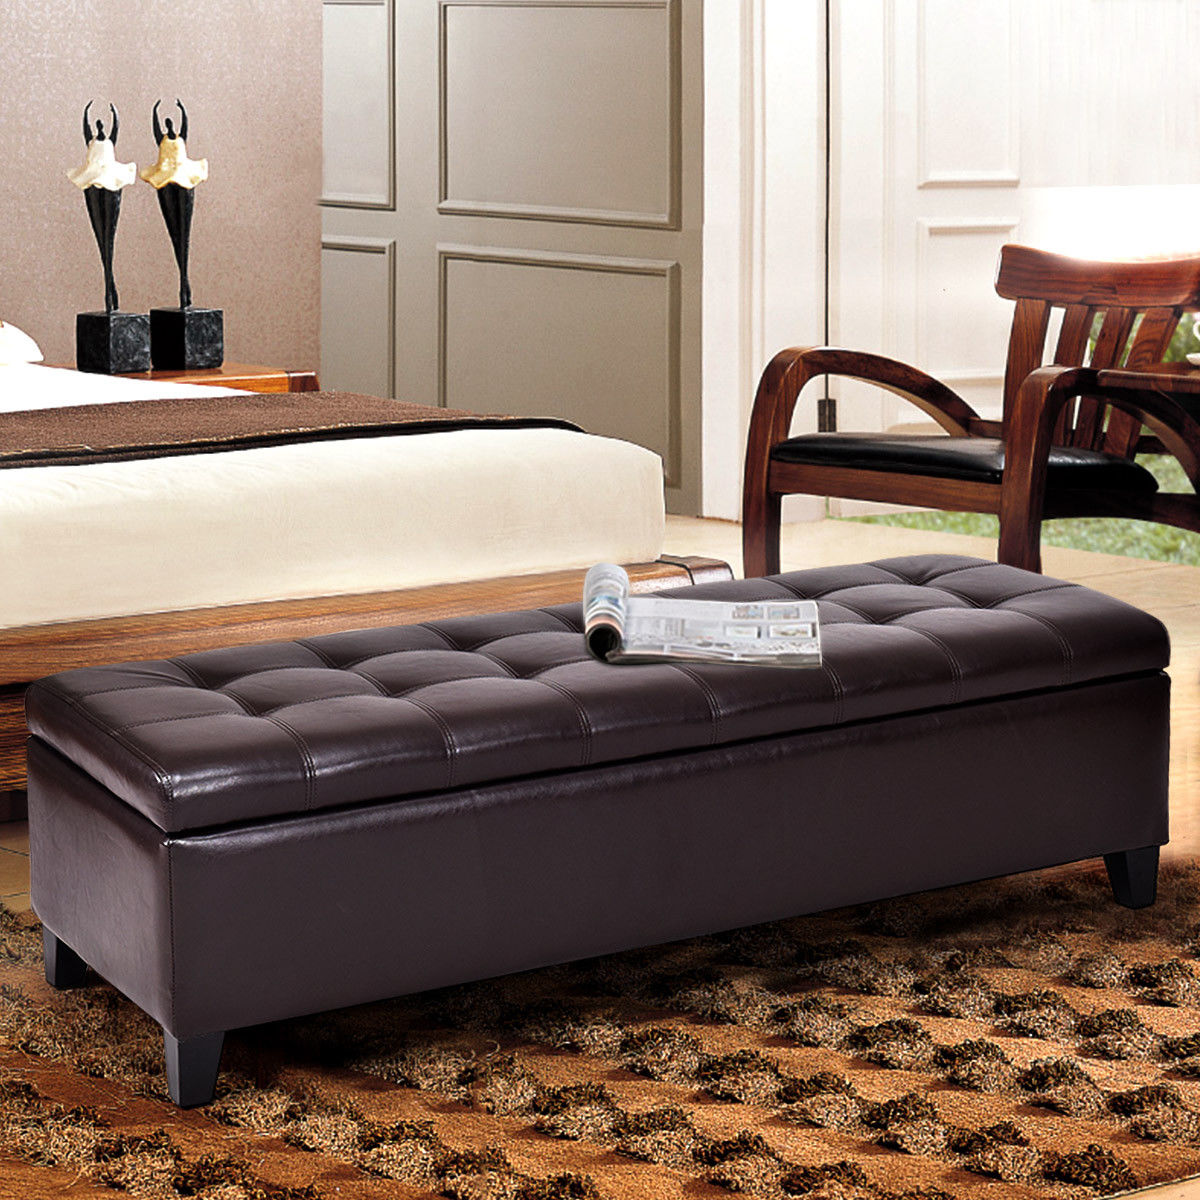 Costway 51'' Storage Ottoman Bench PU Leather Home Accents Tufted Rectangular Footstool